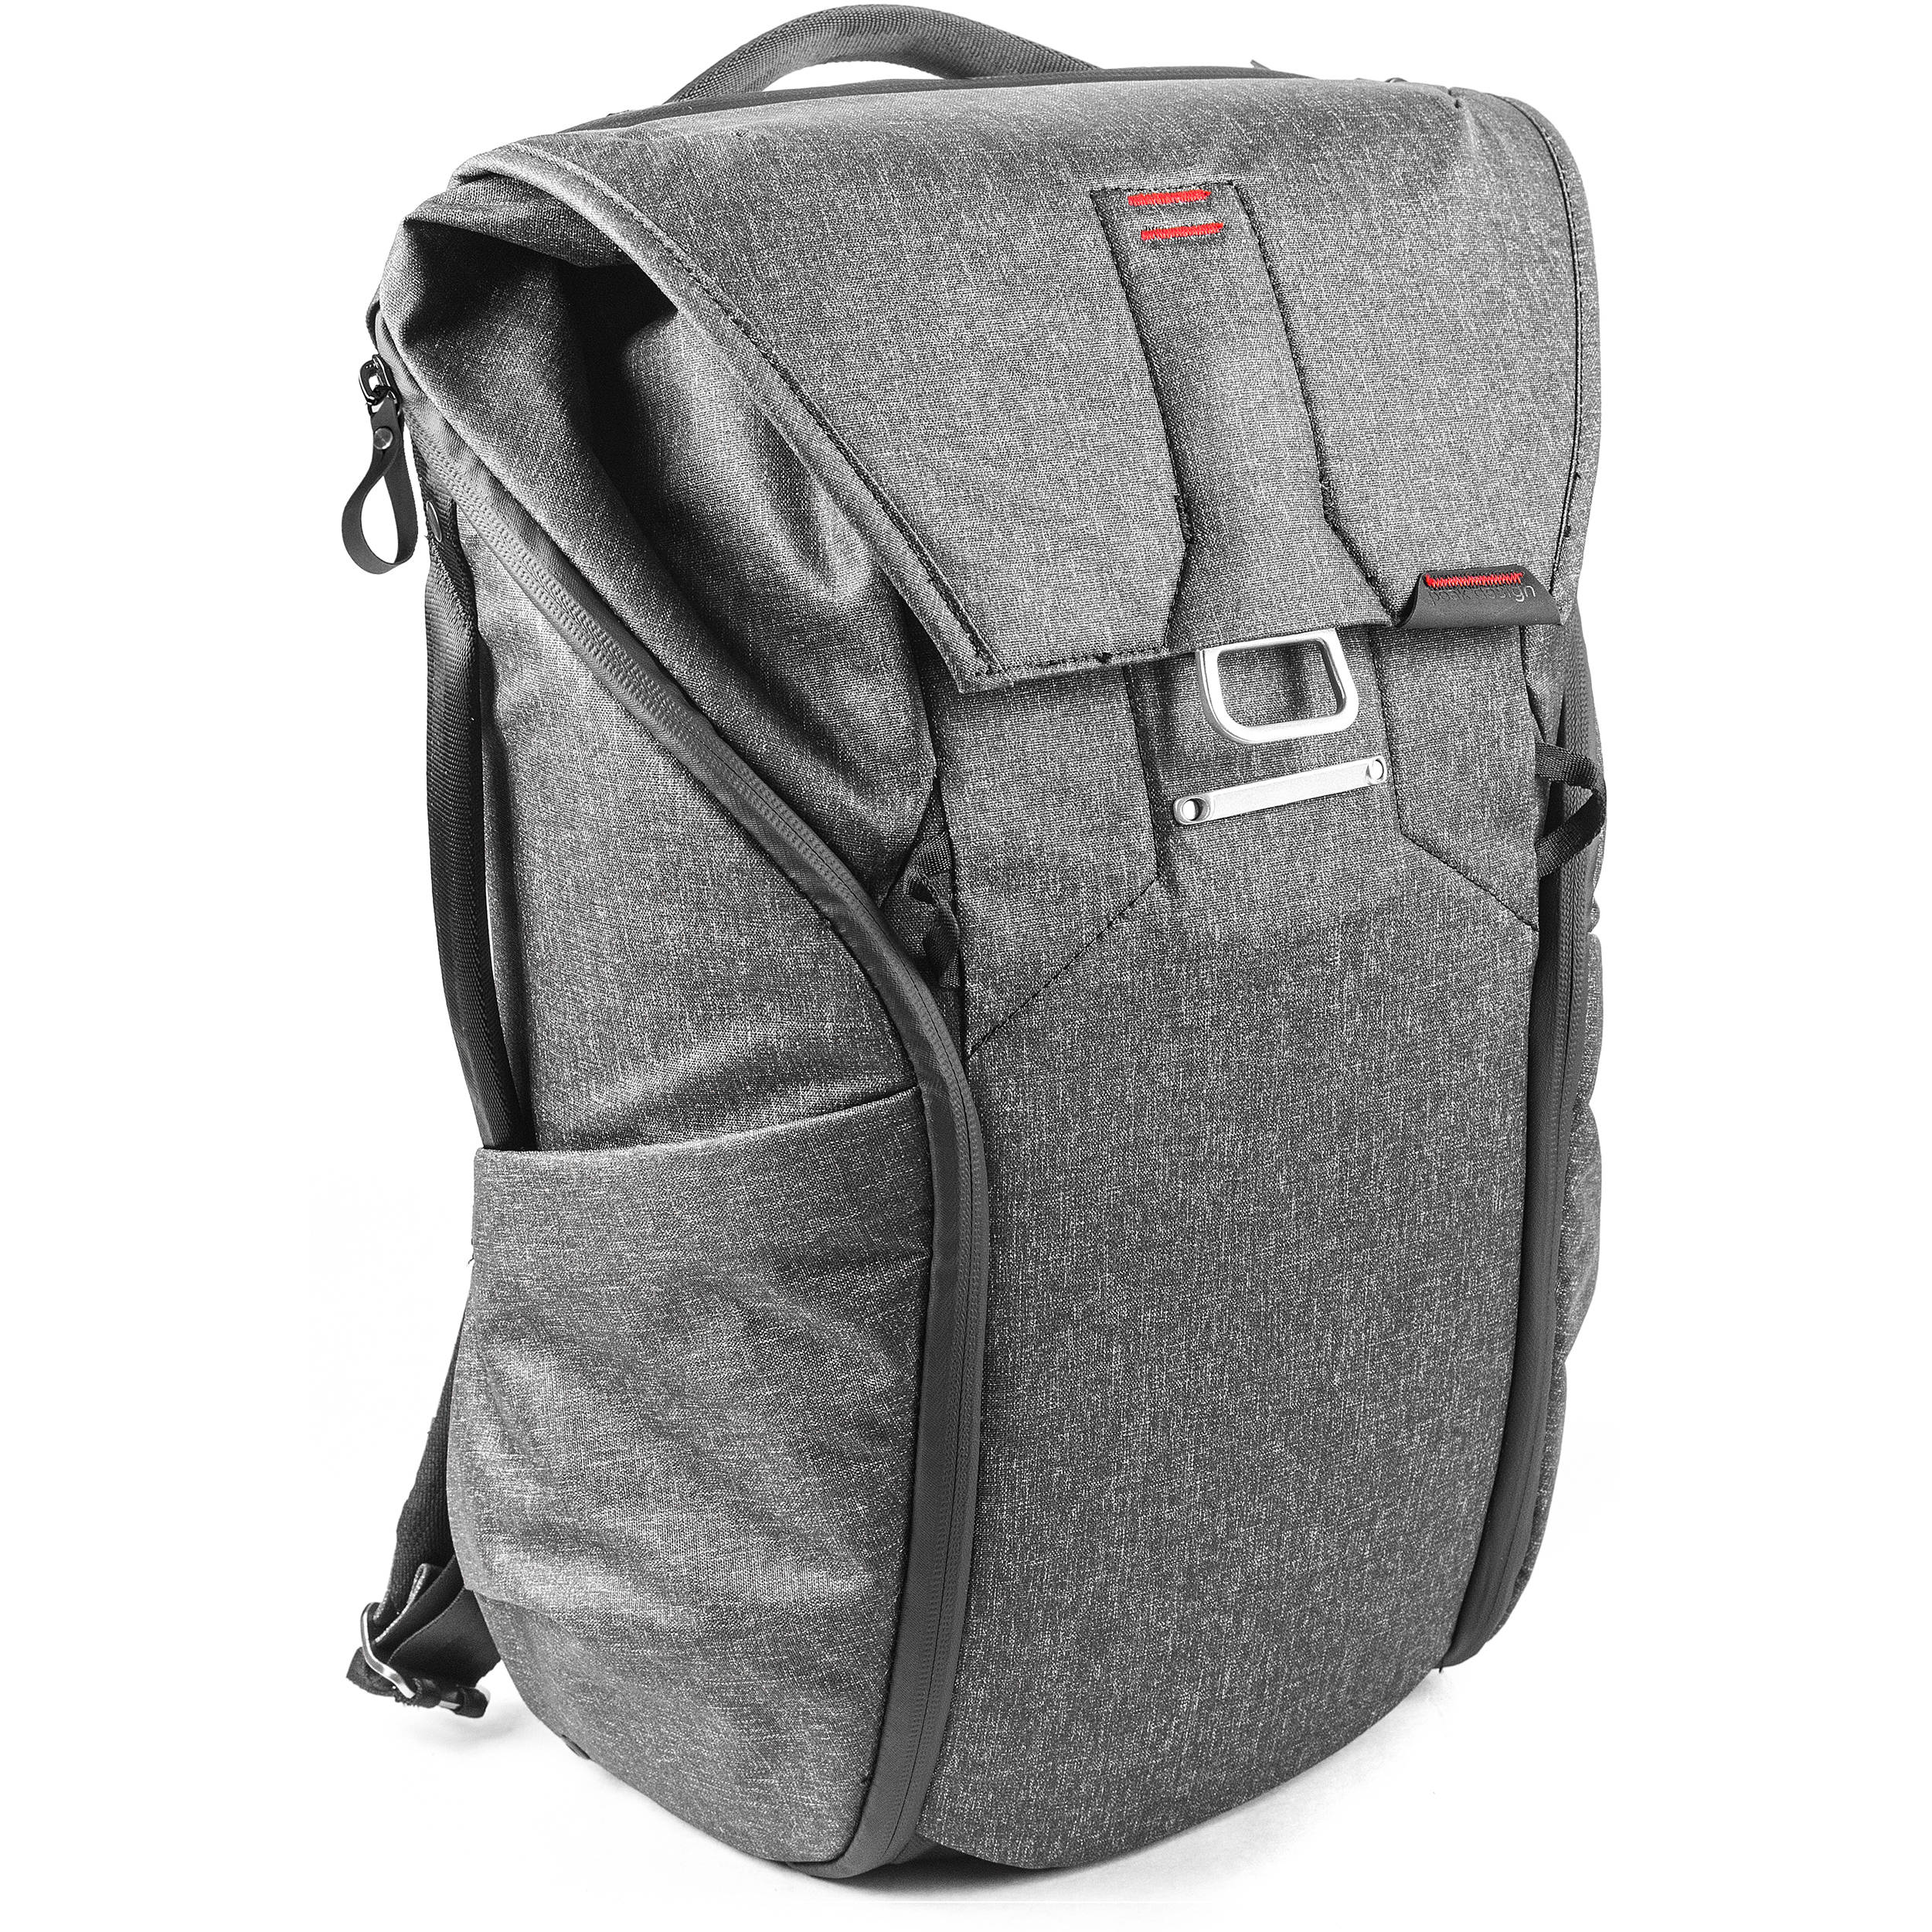 jeffontheroad-gift-ideas-photographers-youtubers-peak-design-everyday-backpack